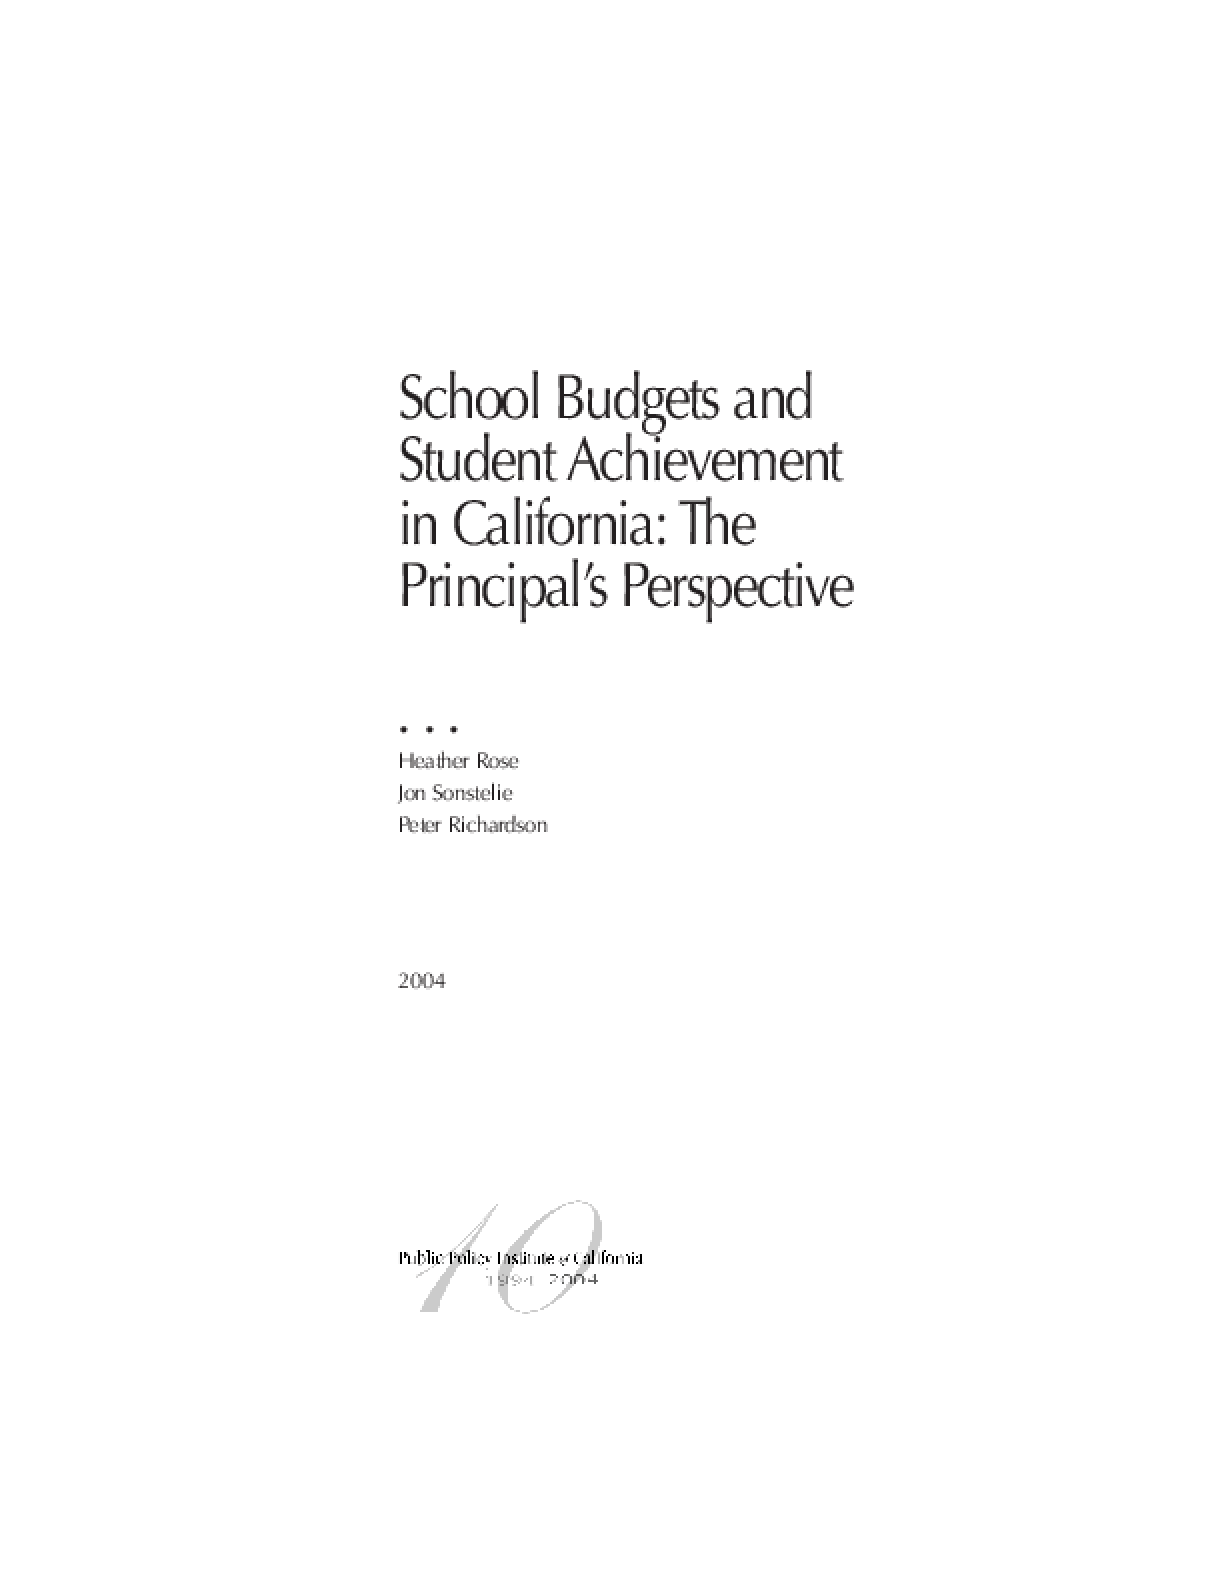 School Budgets and Student Achievement in California: The Principal's Perspective